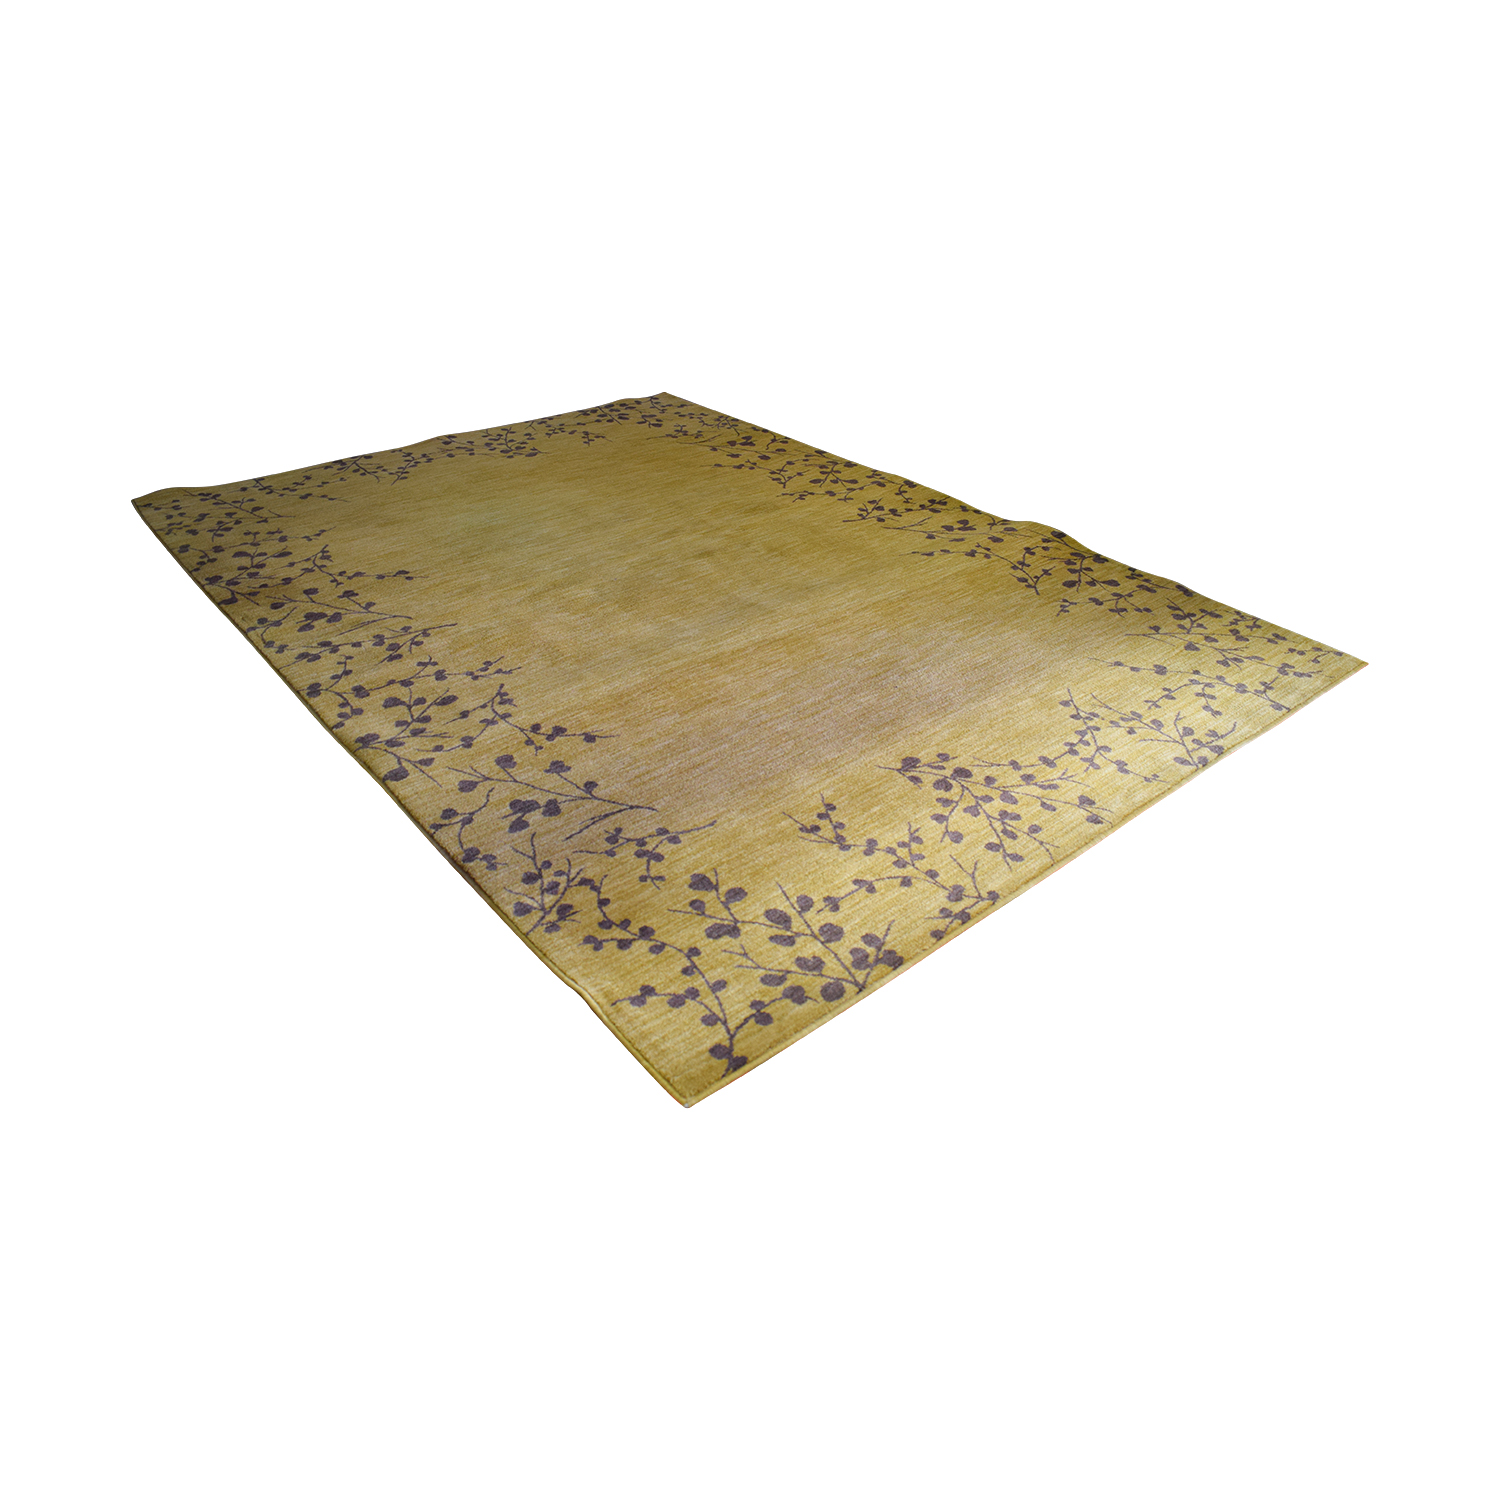 buy Allure Allure Gold with Brown Branches Rug online